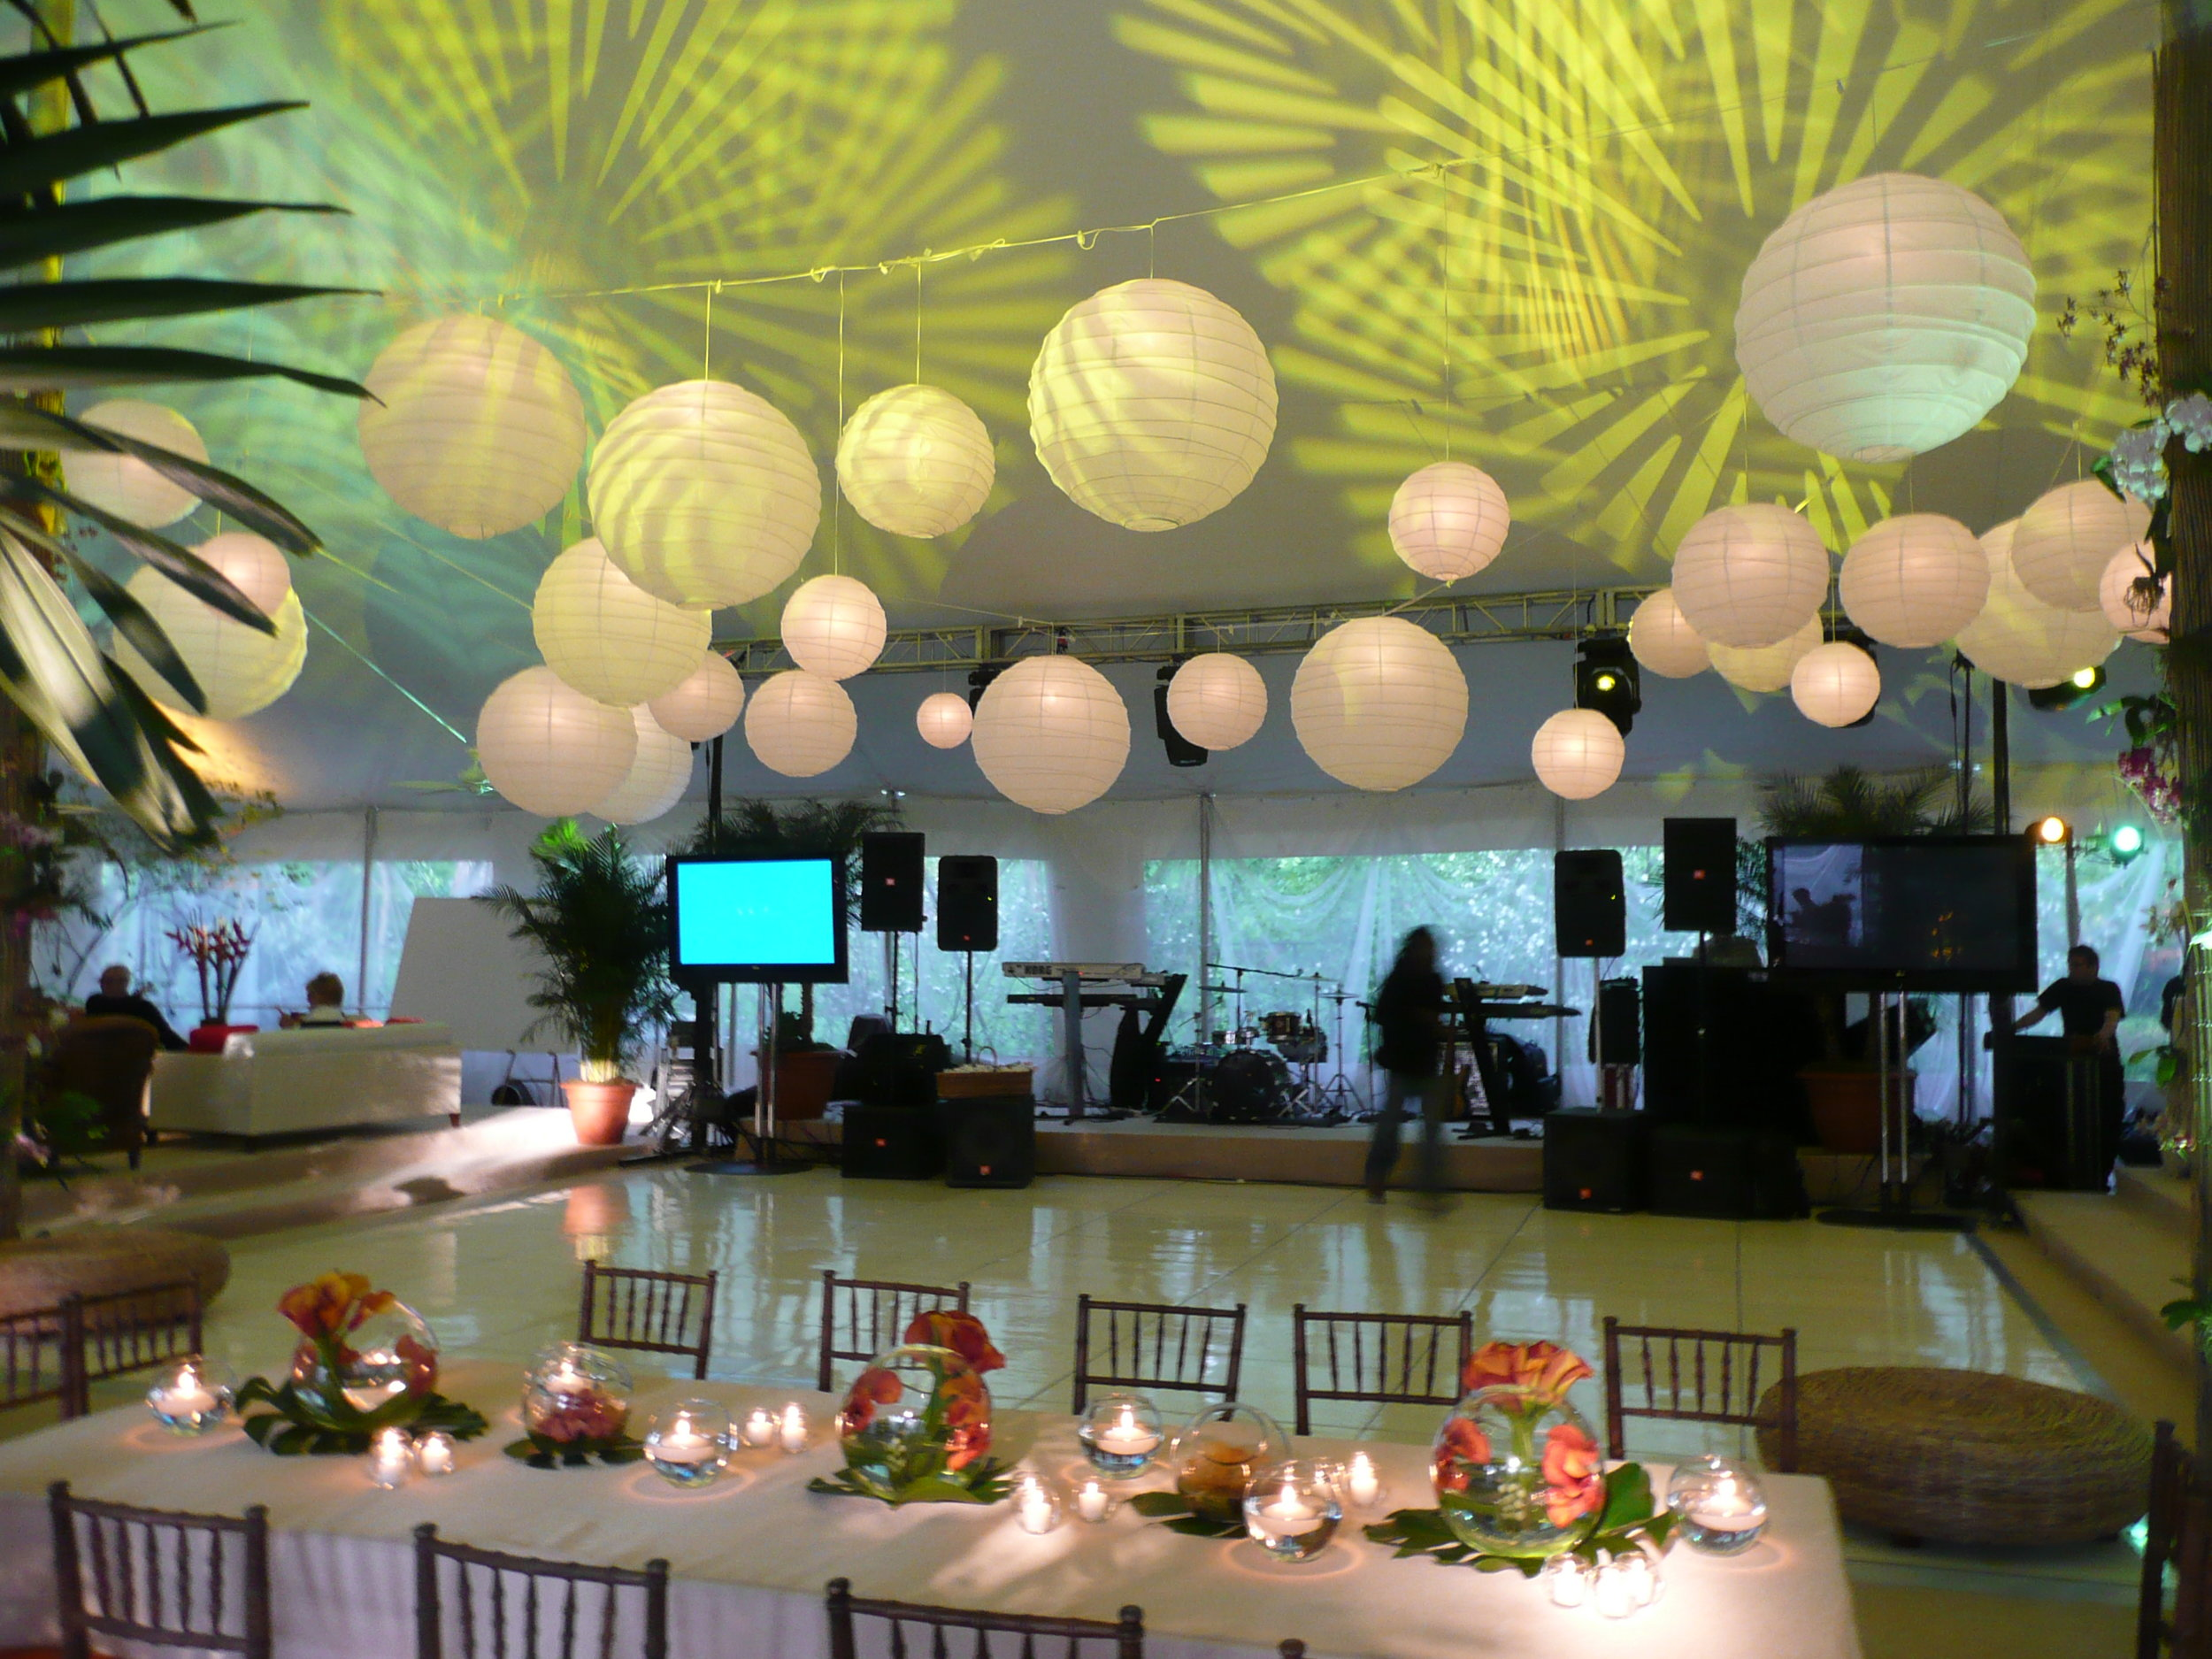 tropical+event+decor+design+lighting+nj+ny+pa+eggsotic+events.jpg